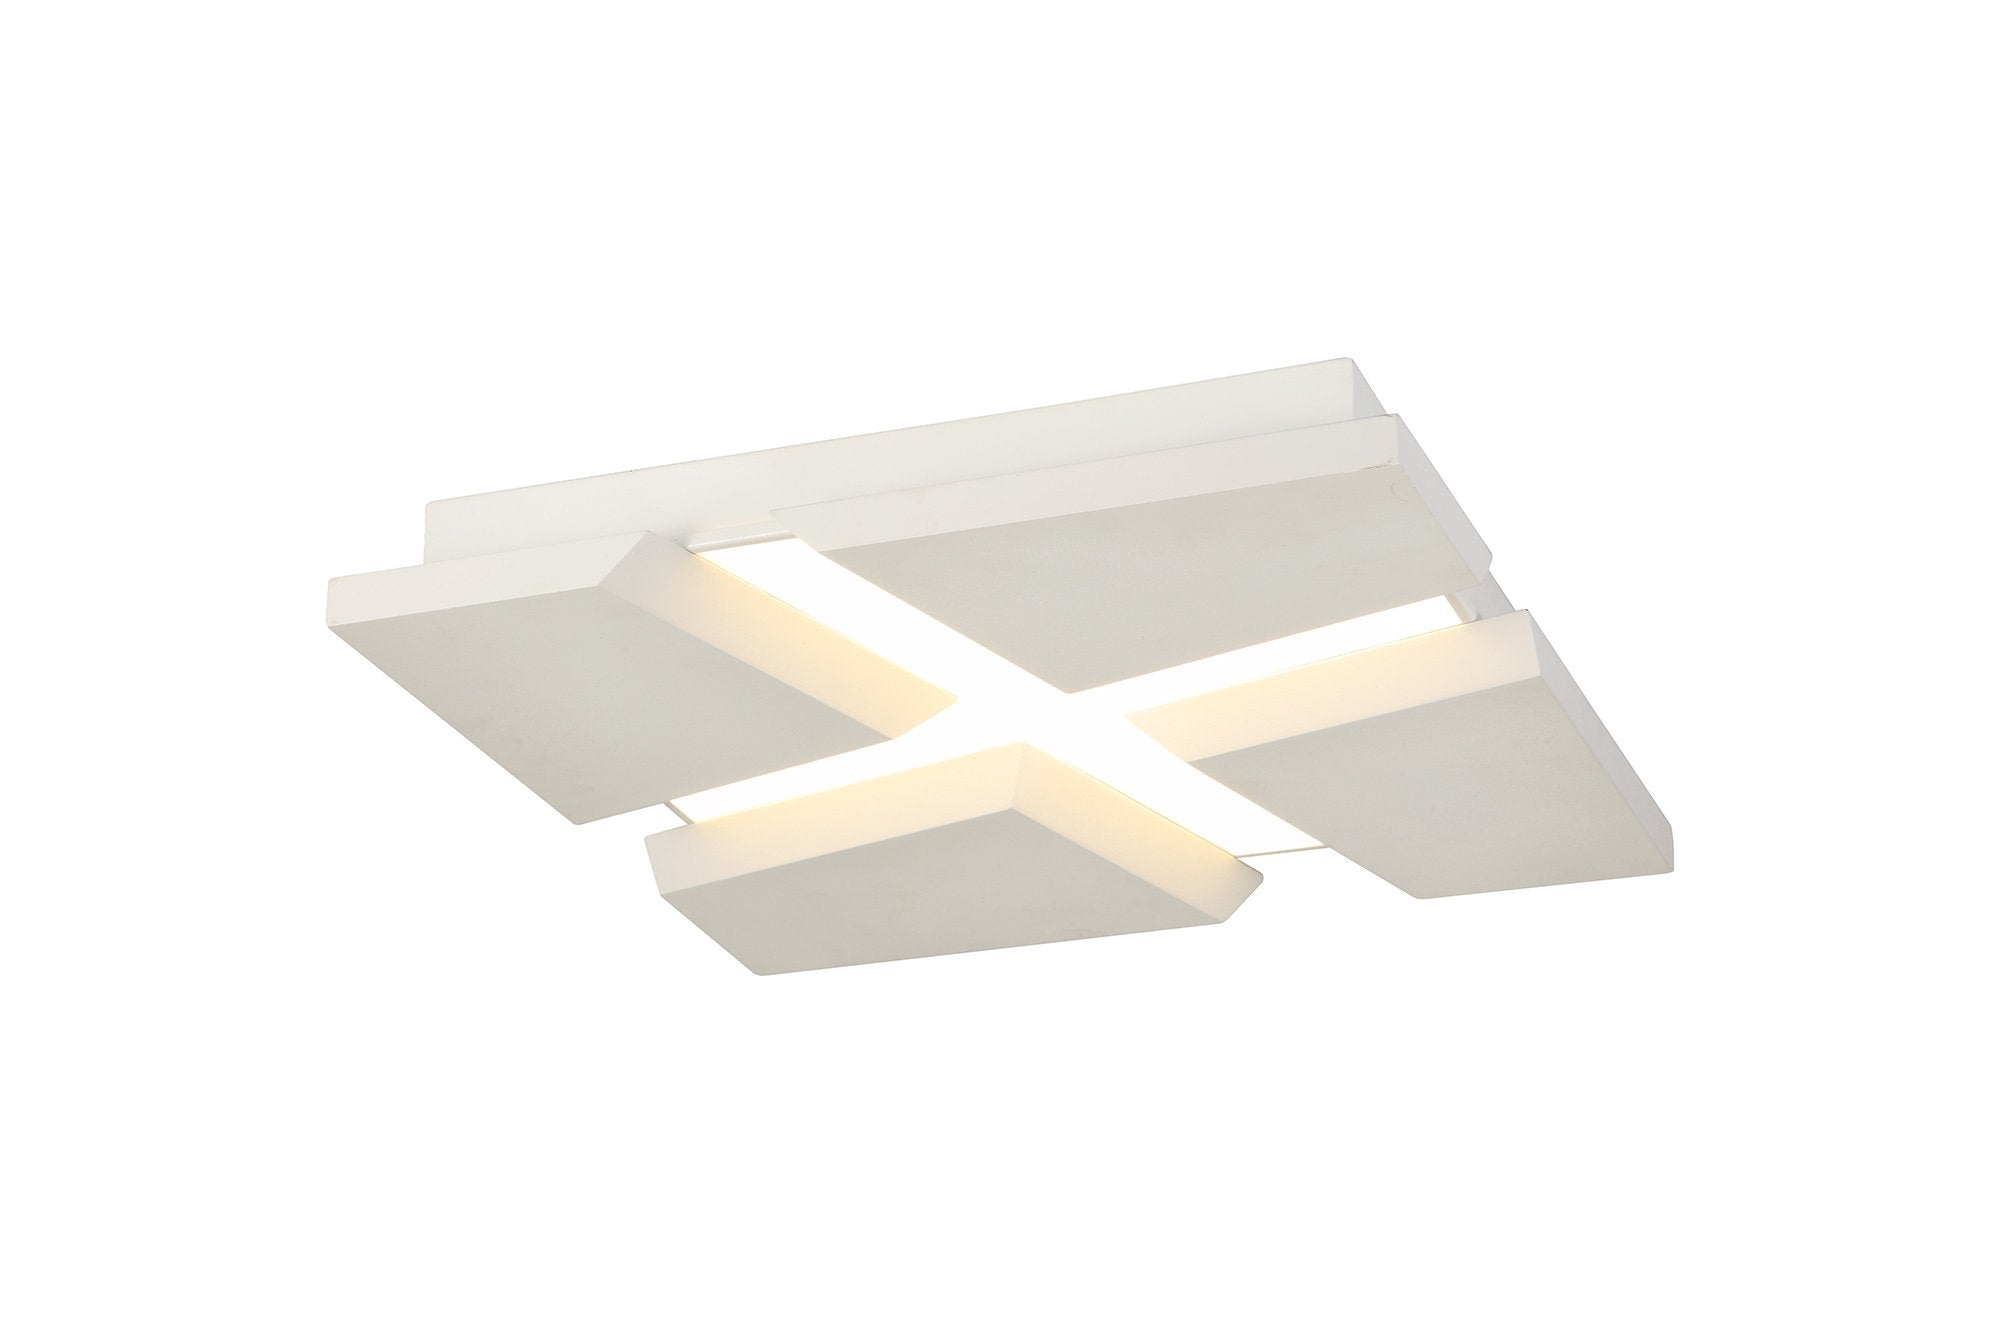 fracture Flush Ceiling, 1 x 50W LED, 3000K, 3500lm, Sand White, 3yrs Warranty